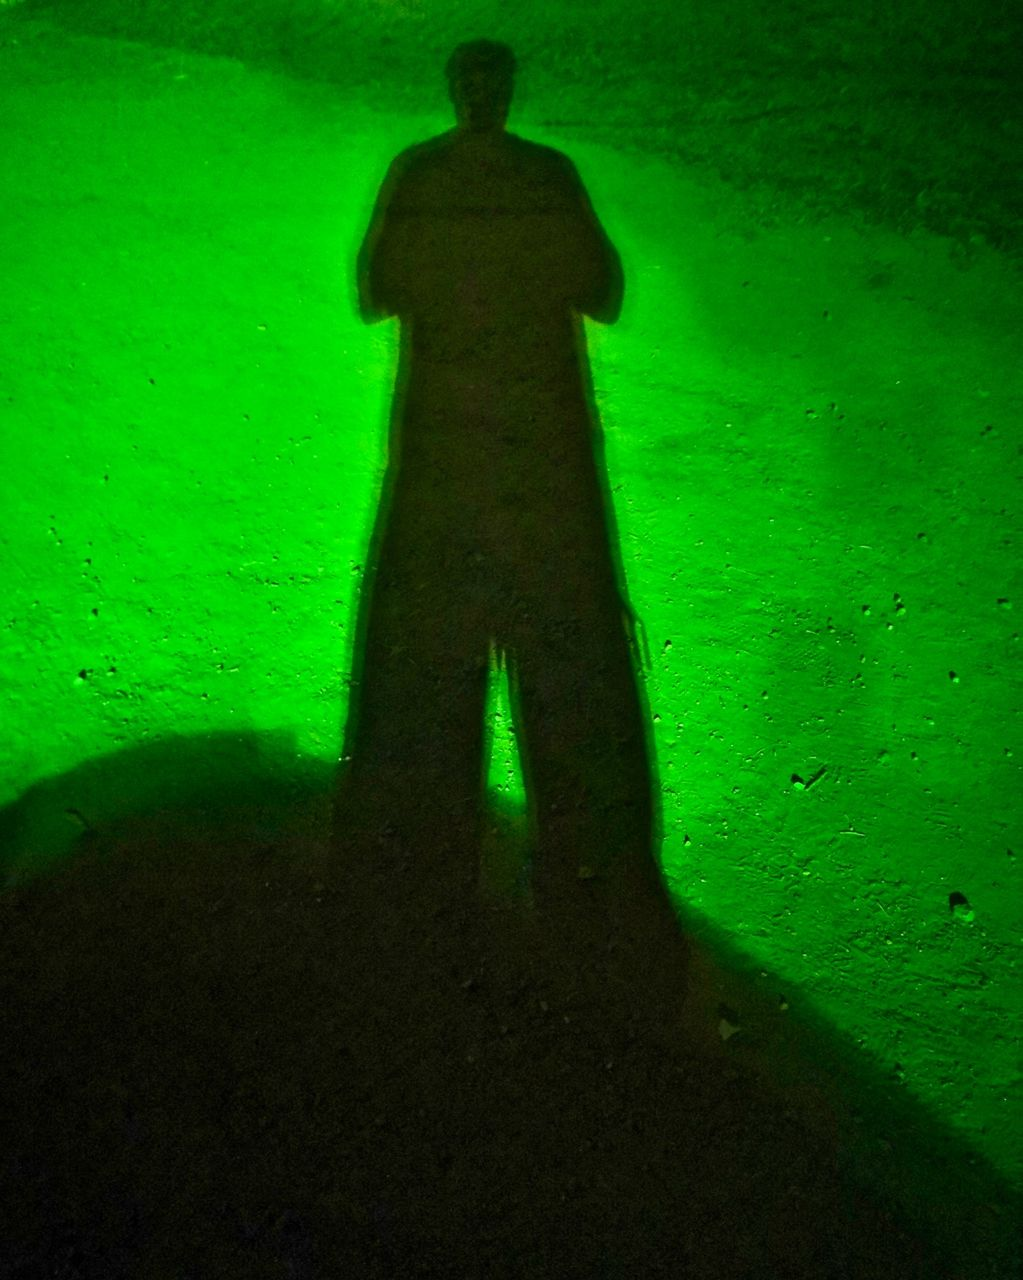 Self Portrait as if the Night was Green (Greenbelt Festival) 2019